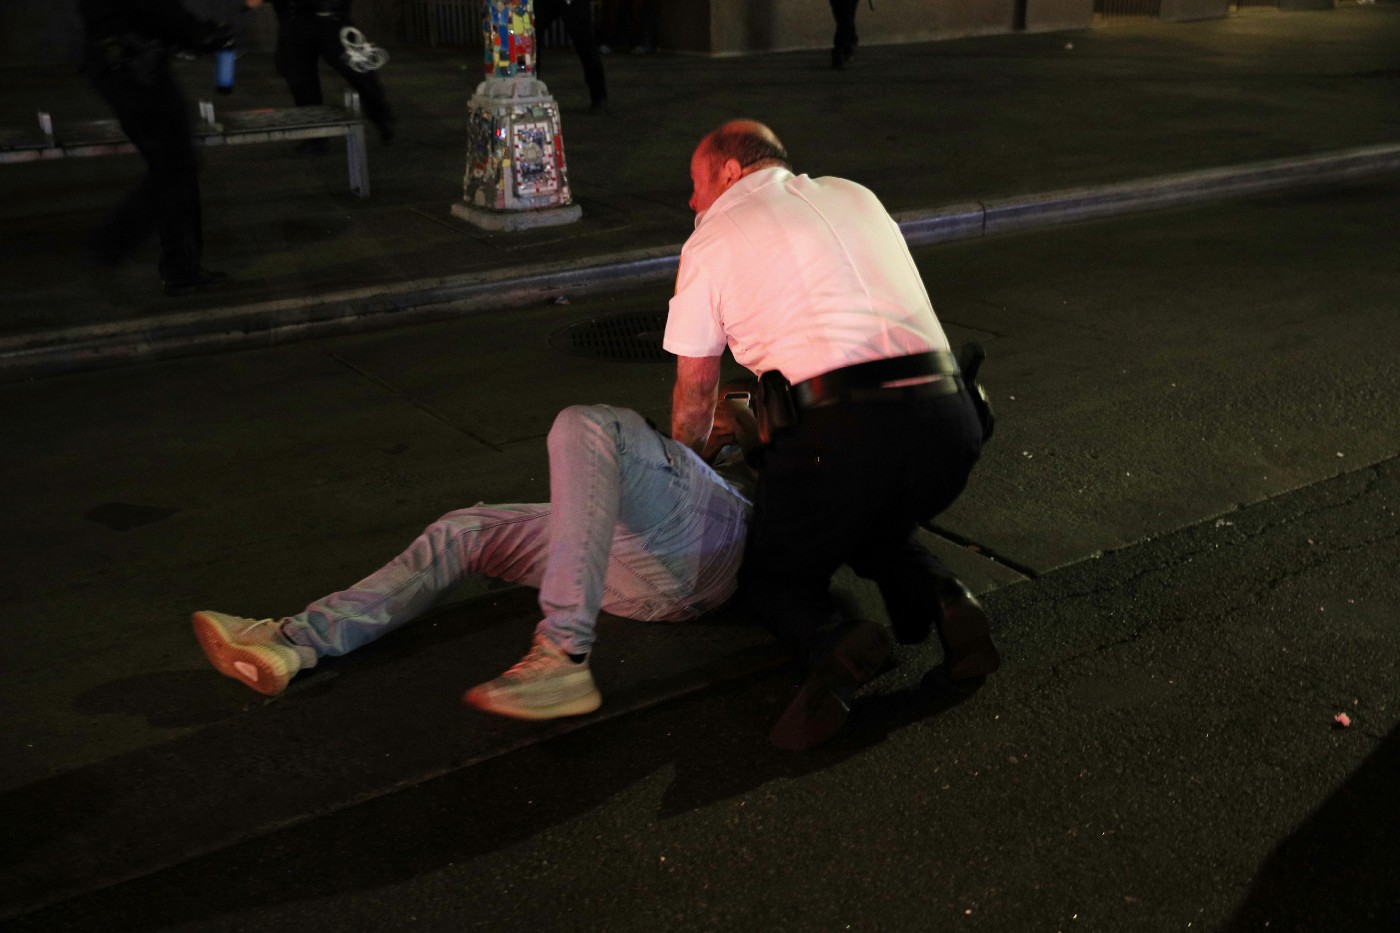 Police with man on the ground